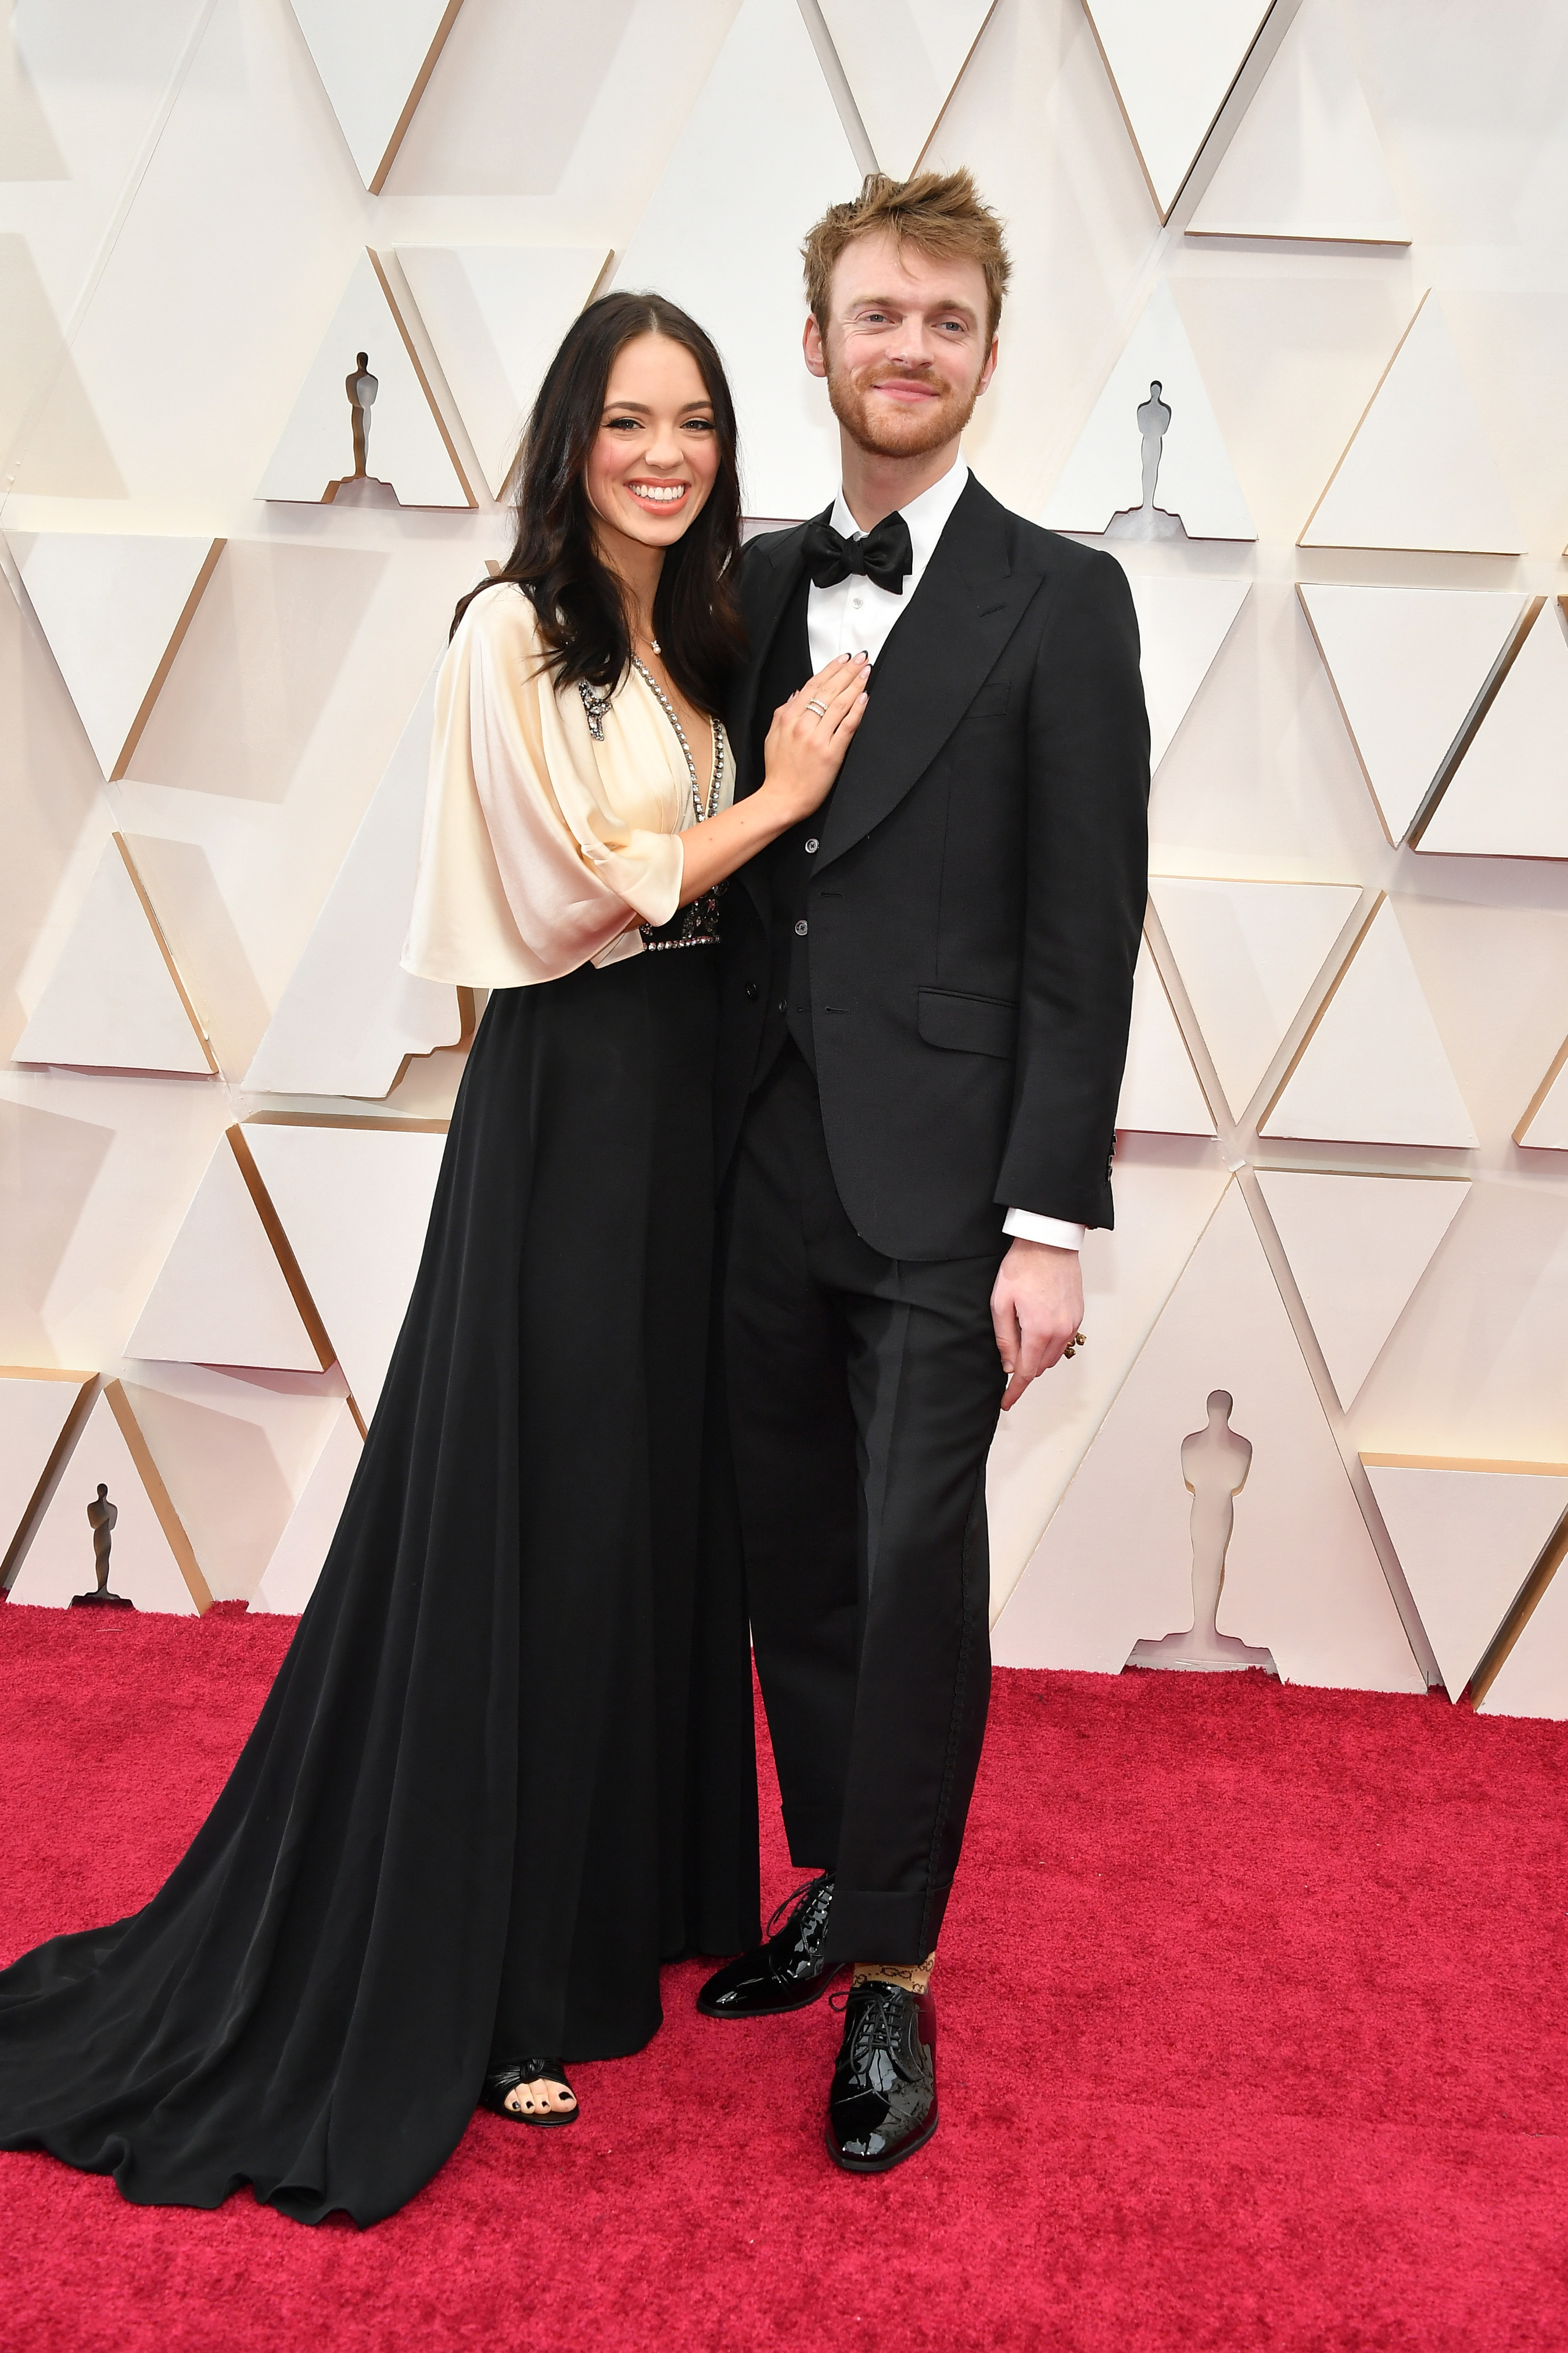 HOLLYWOOD, CALIFORNIA - FEBRUARY 09: (L-R) Claudia Sulewski and Finneas O'Connell attend the 92nd Annual Academy Awards at Hollywood and Highland on February 09, 2020 in Hollywood, California. (Photo by Amy Sussman/Getty Images)